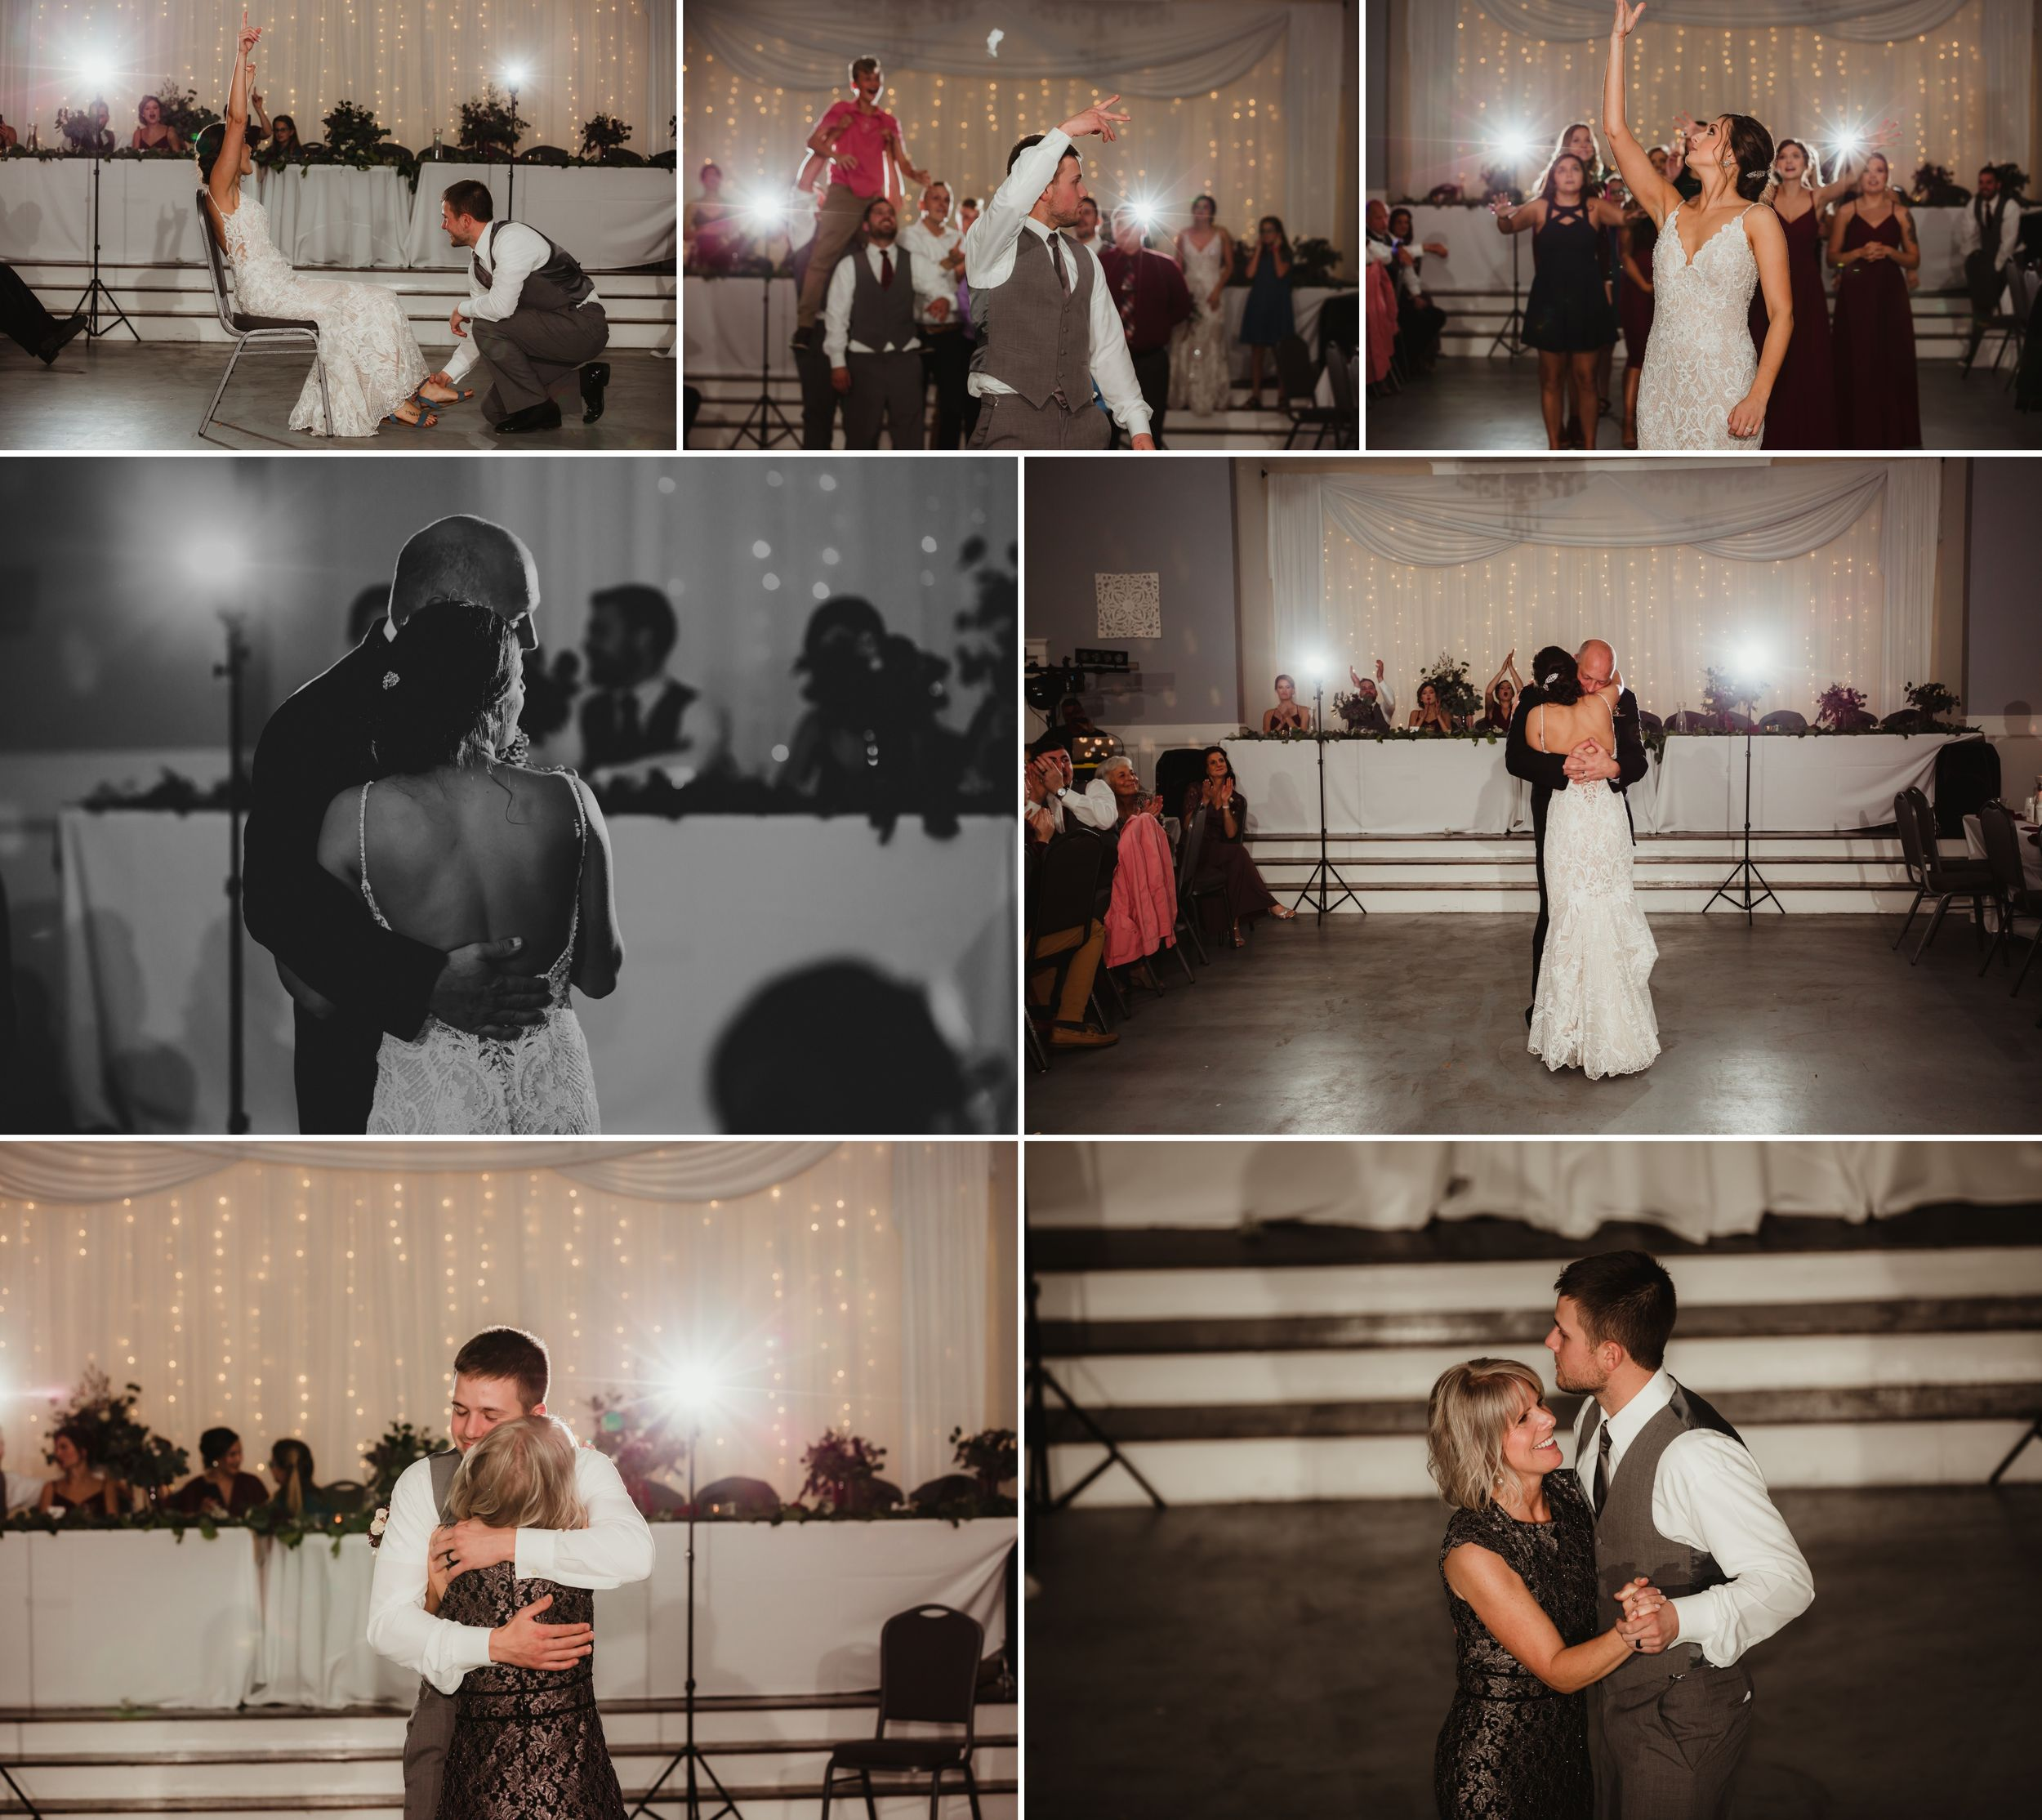 Collage of the bouquet toss, garter, father daughter dance, and mother son dance.